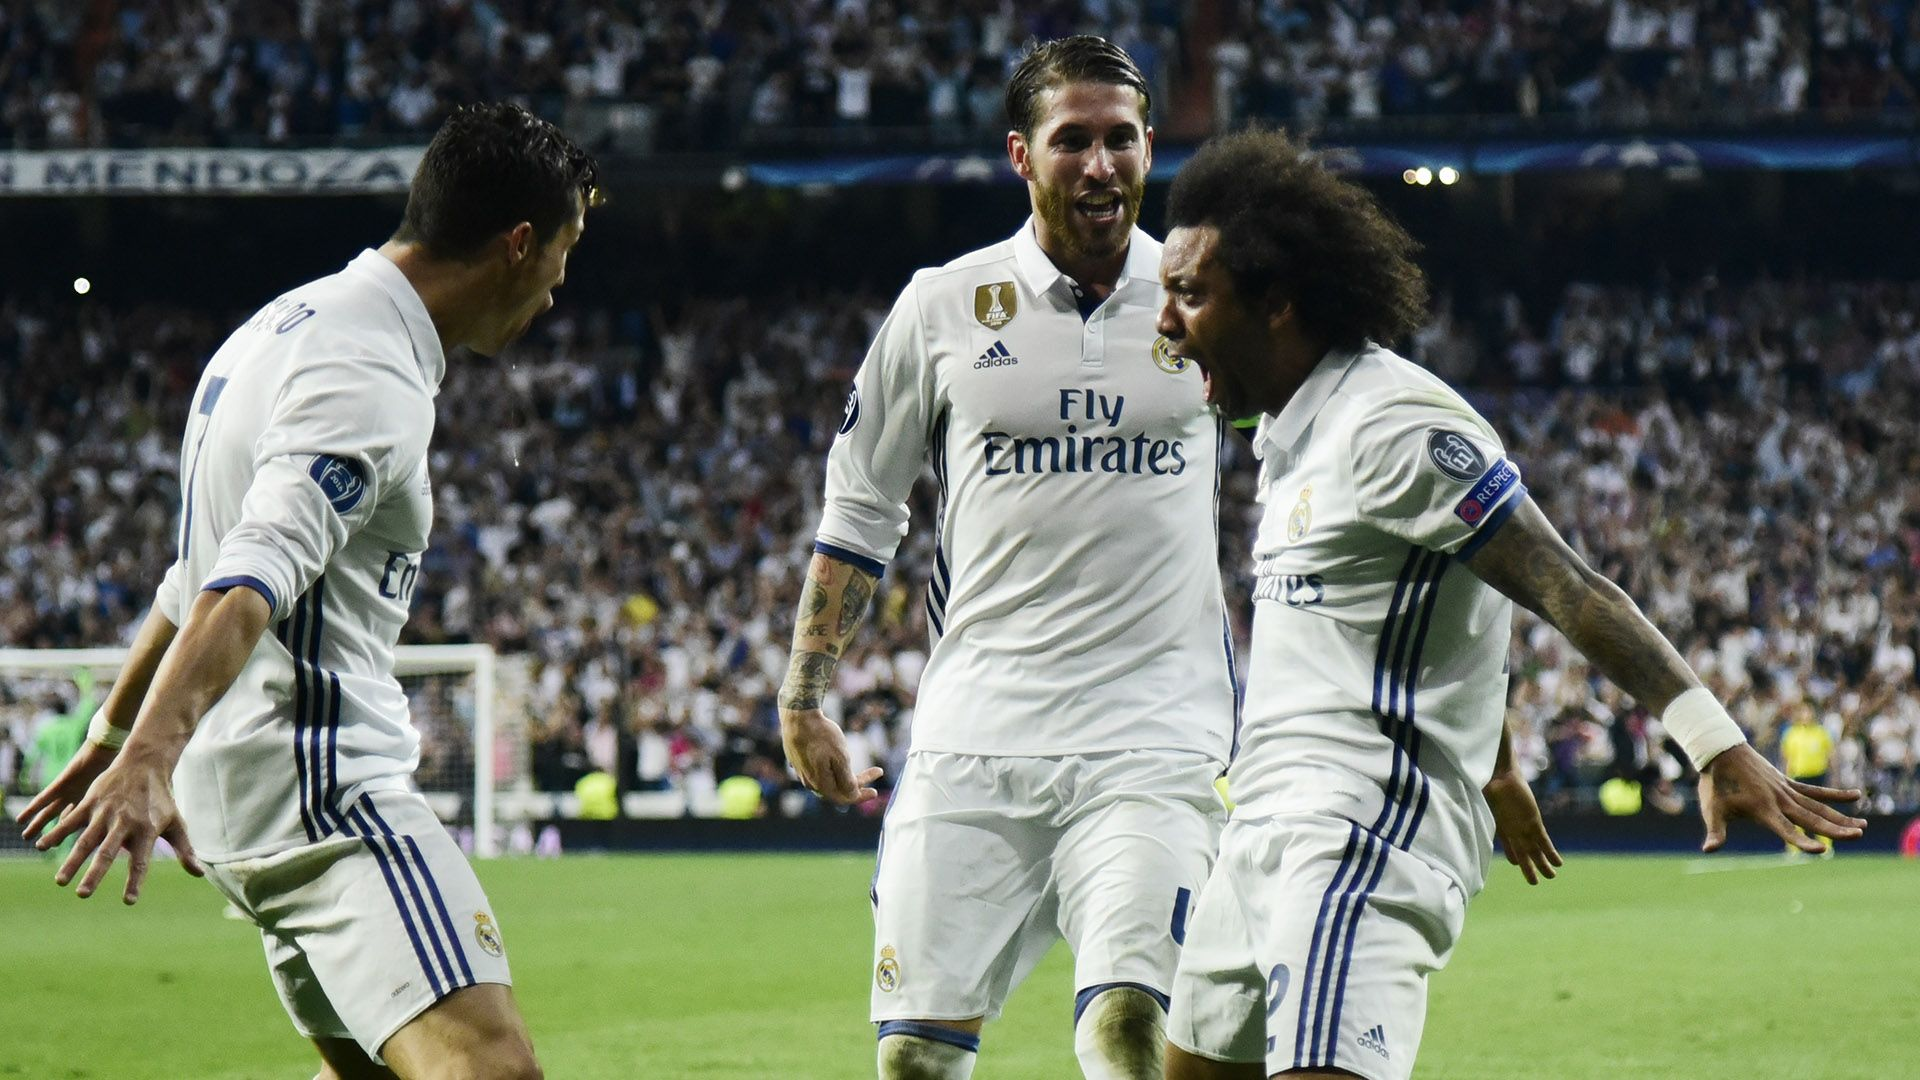 Marcelo Hd Images Real Madrid Healthy Summer Madrid